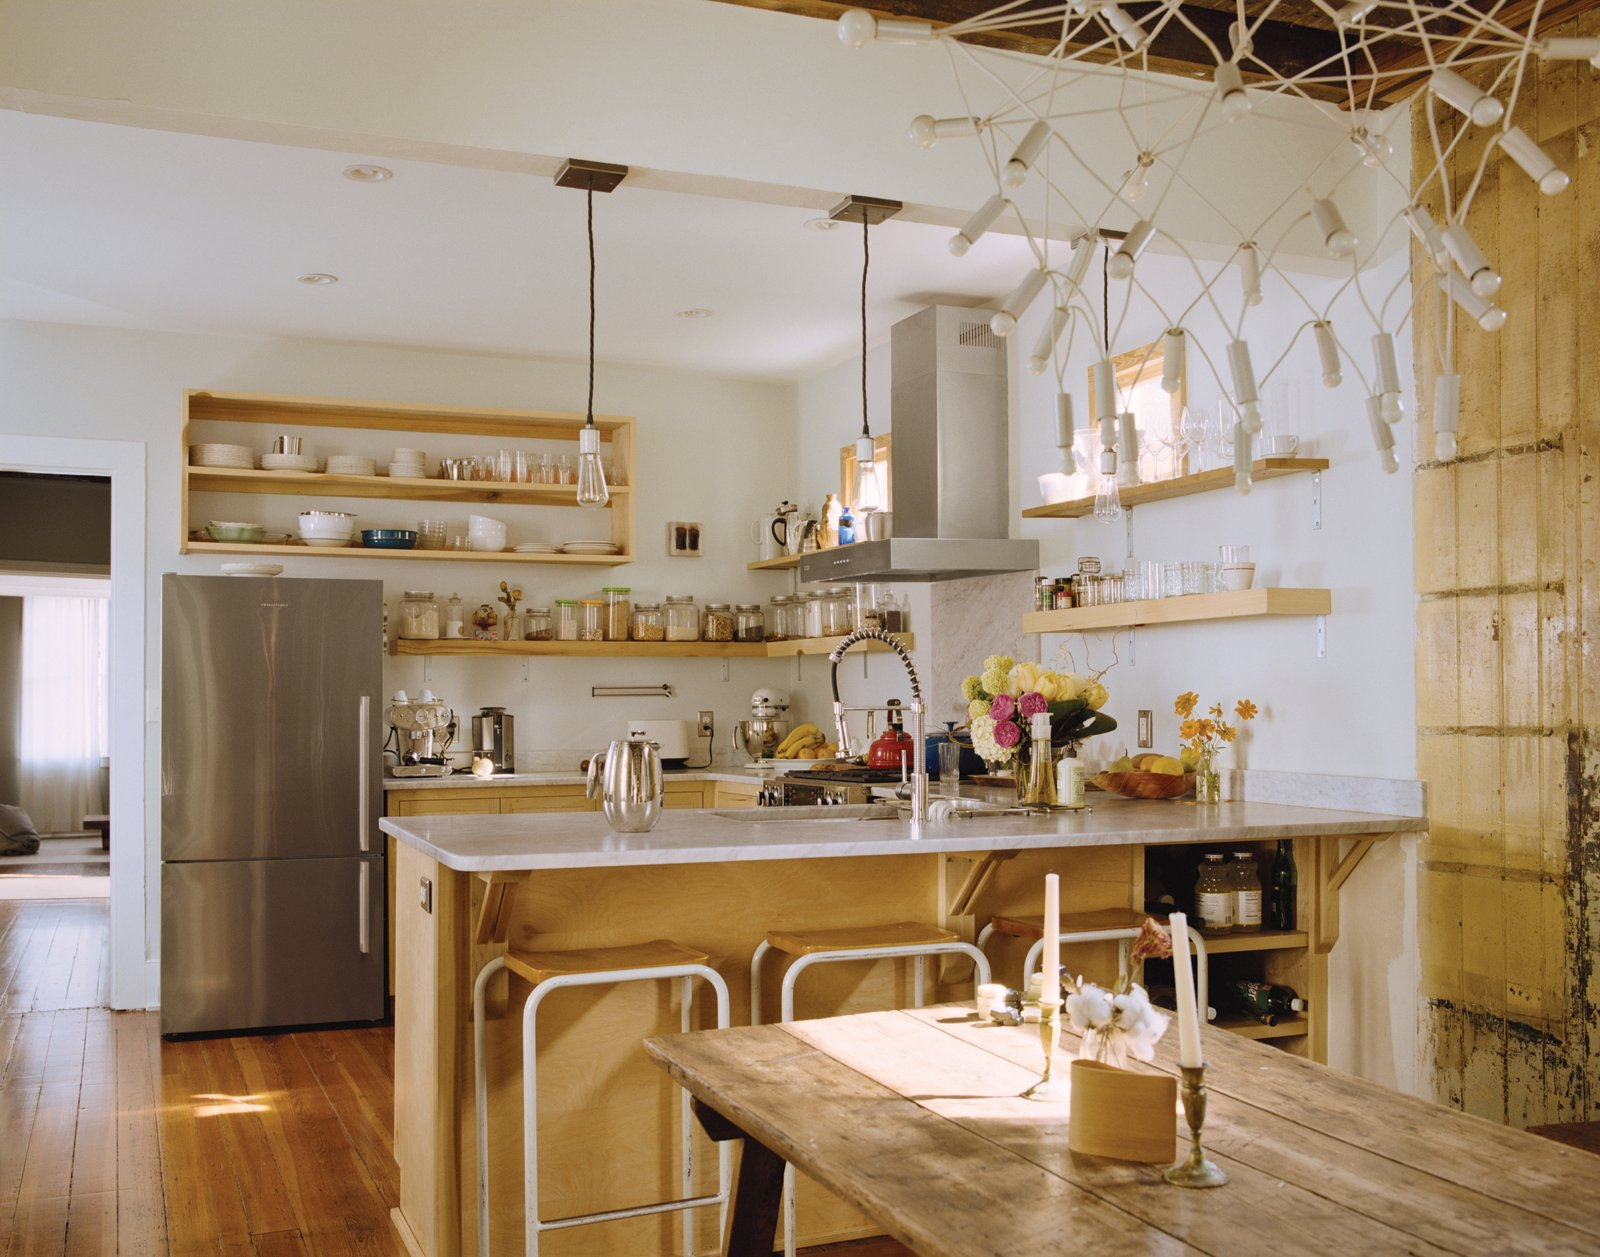 The trio of pendant lamps hanging above the counter came from Schoolhouse Electric Co. and were reworked by Peyton Avrett to fit the width of the header beam to which they are attached. The bar stools were gifted from a friend.  Photo 9 of 18 in Raise High the Roof Beams